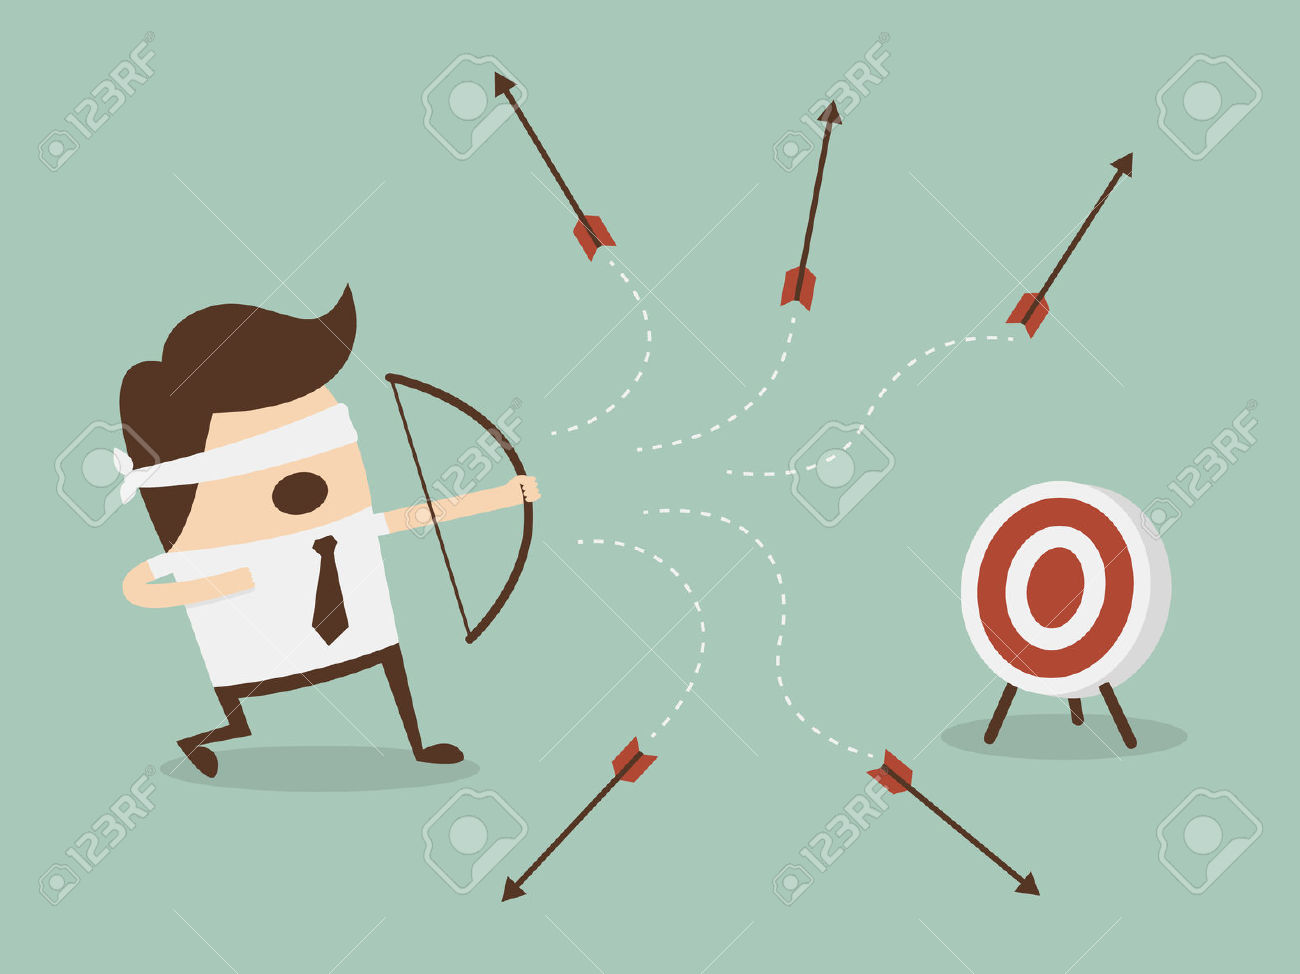 Shooting arrow target clipart clip art download Blindfold Businessman Shooting Arrow Royalty Free Cliparts ... clip art download